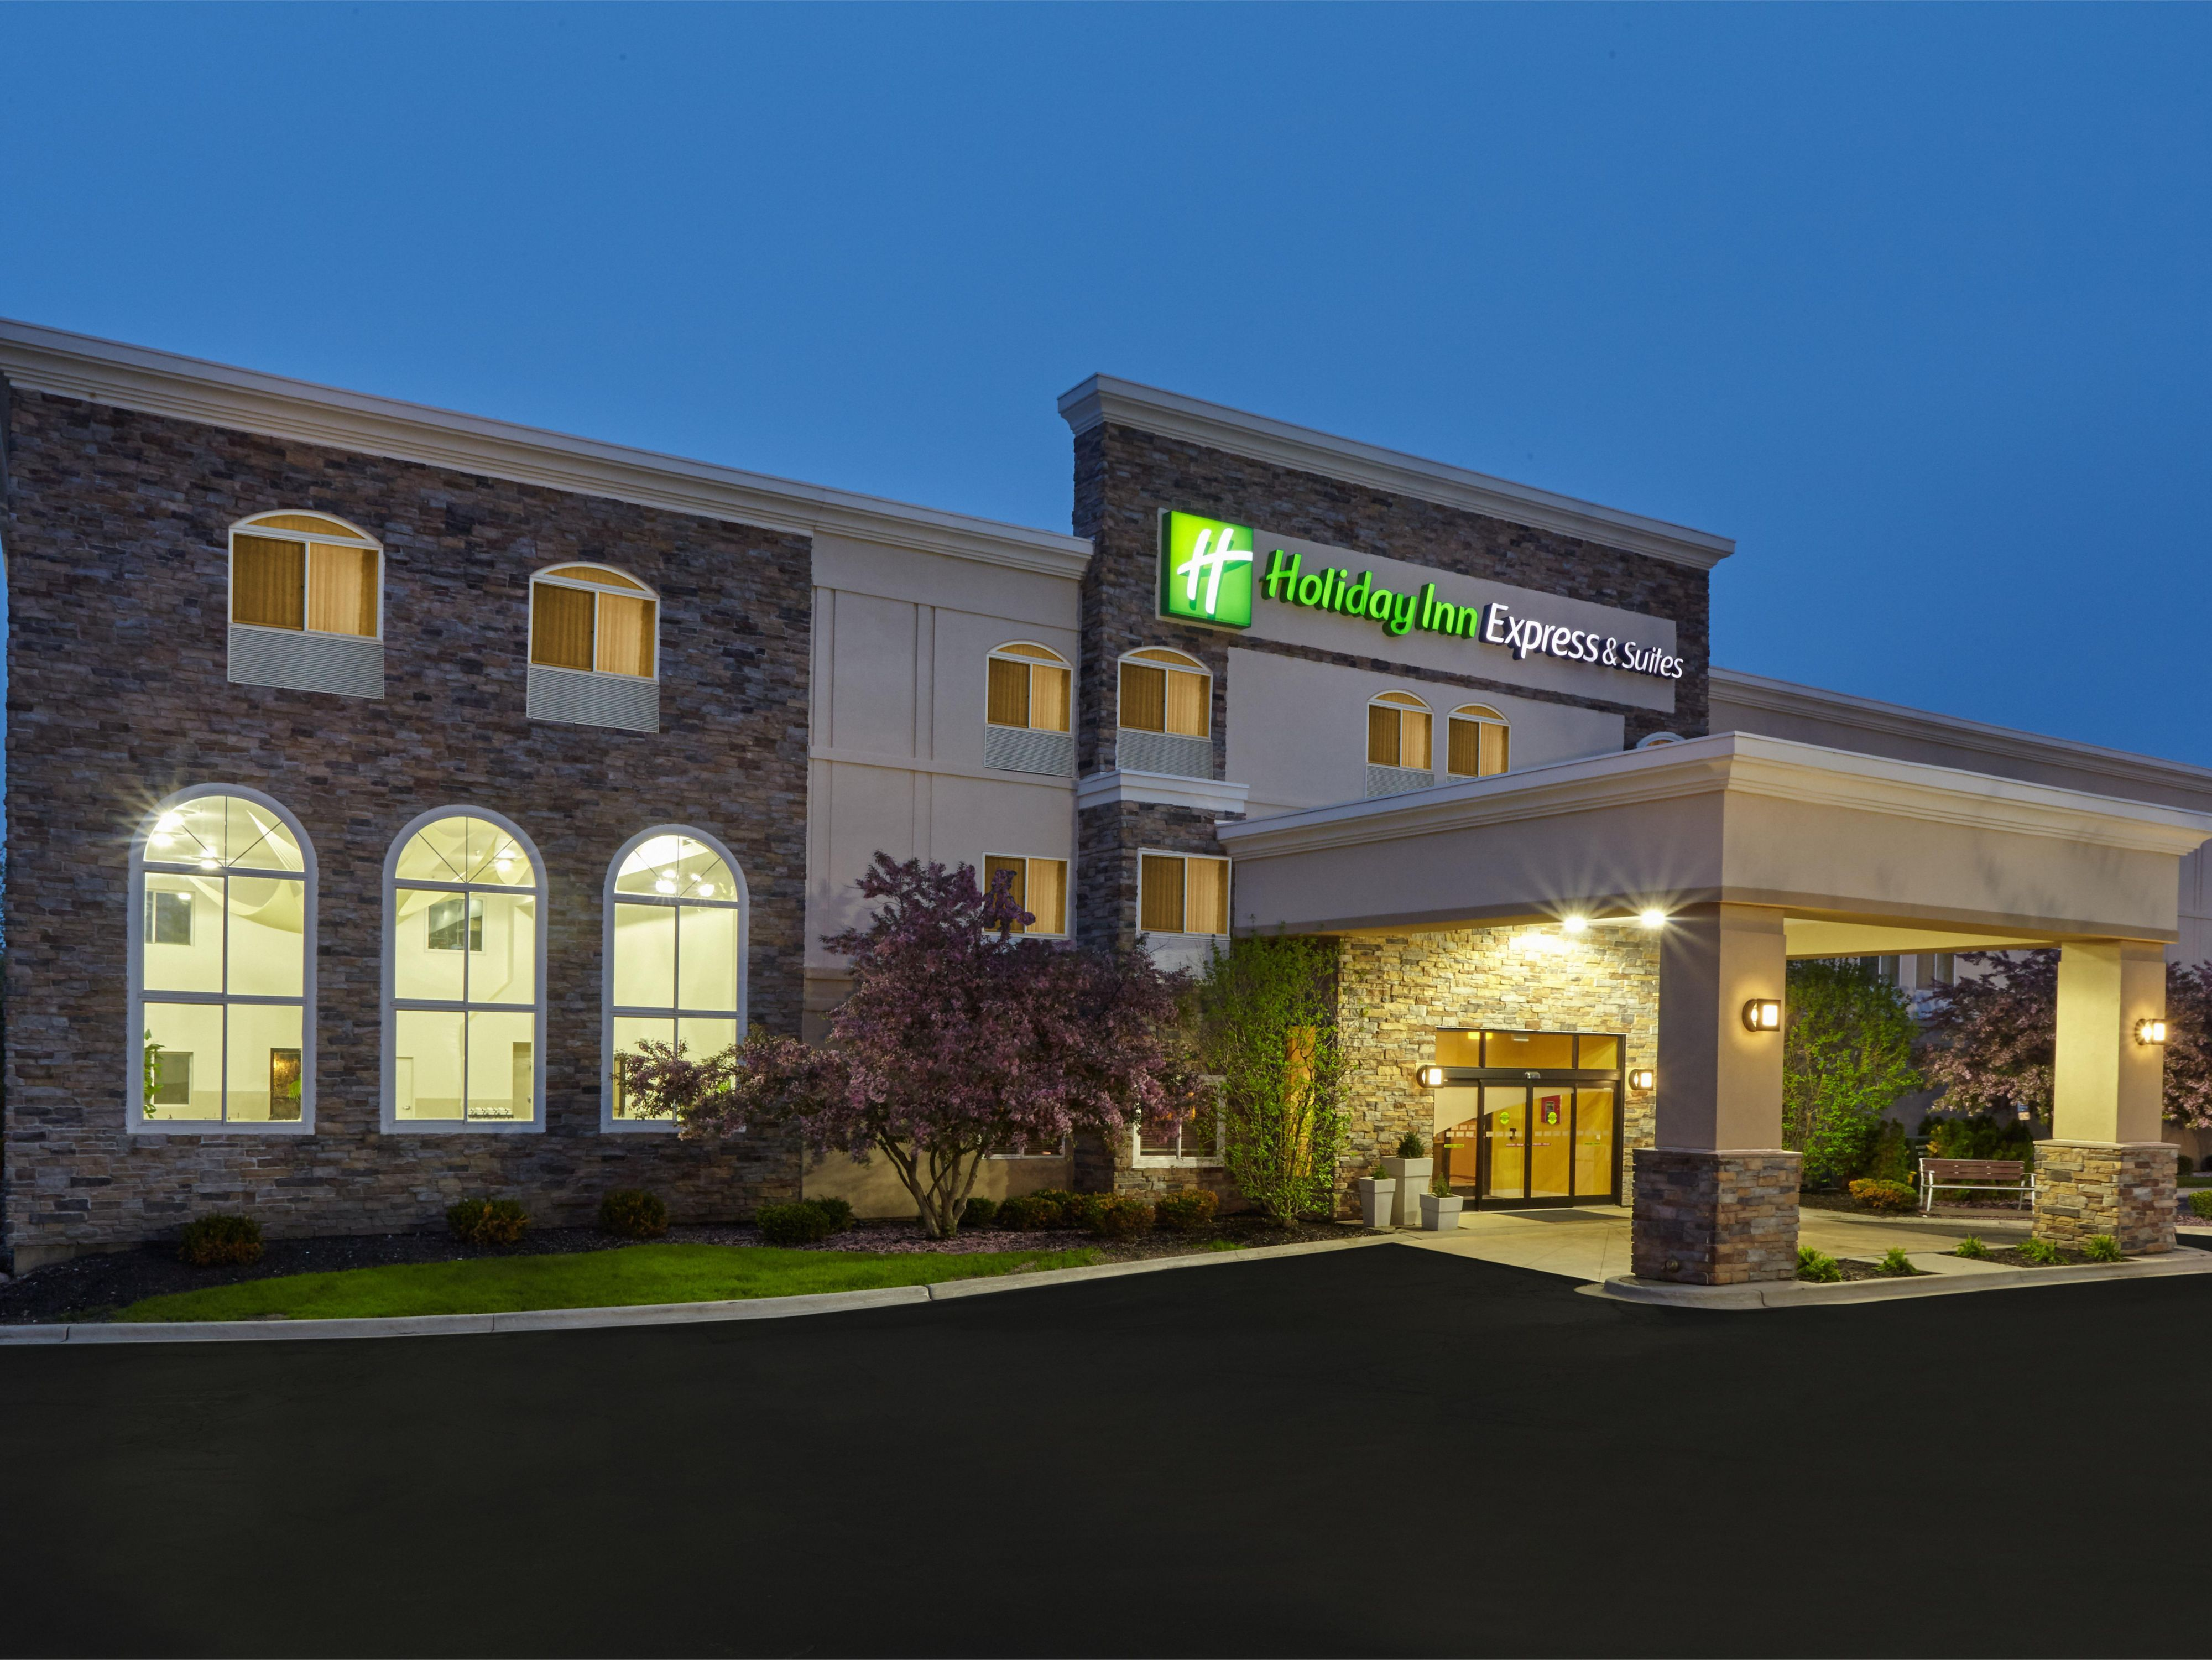 Holiday Inn Express & Suites hotel across Independence Grove